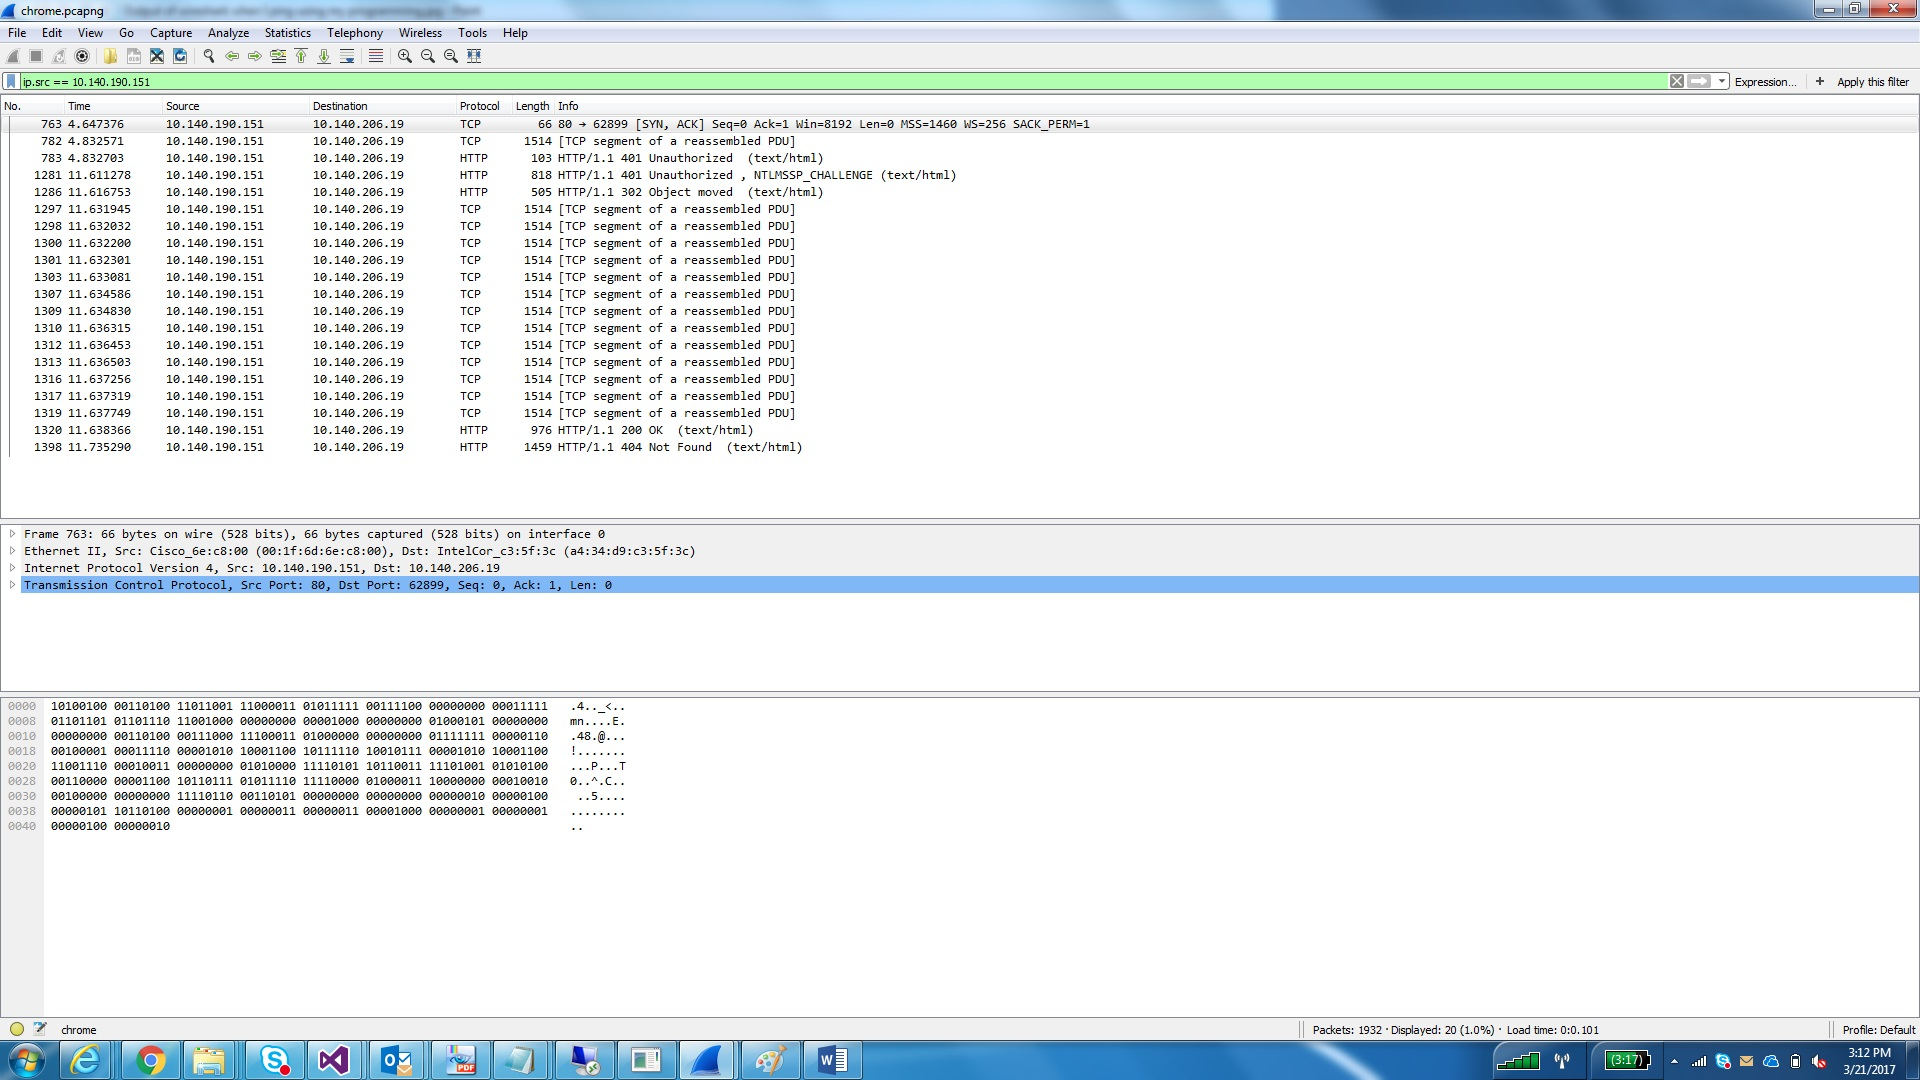 Output of wireshark when I ping using Internet Explorer